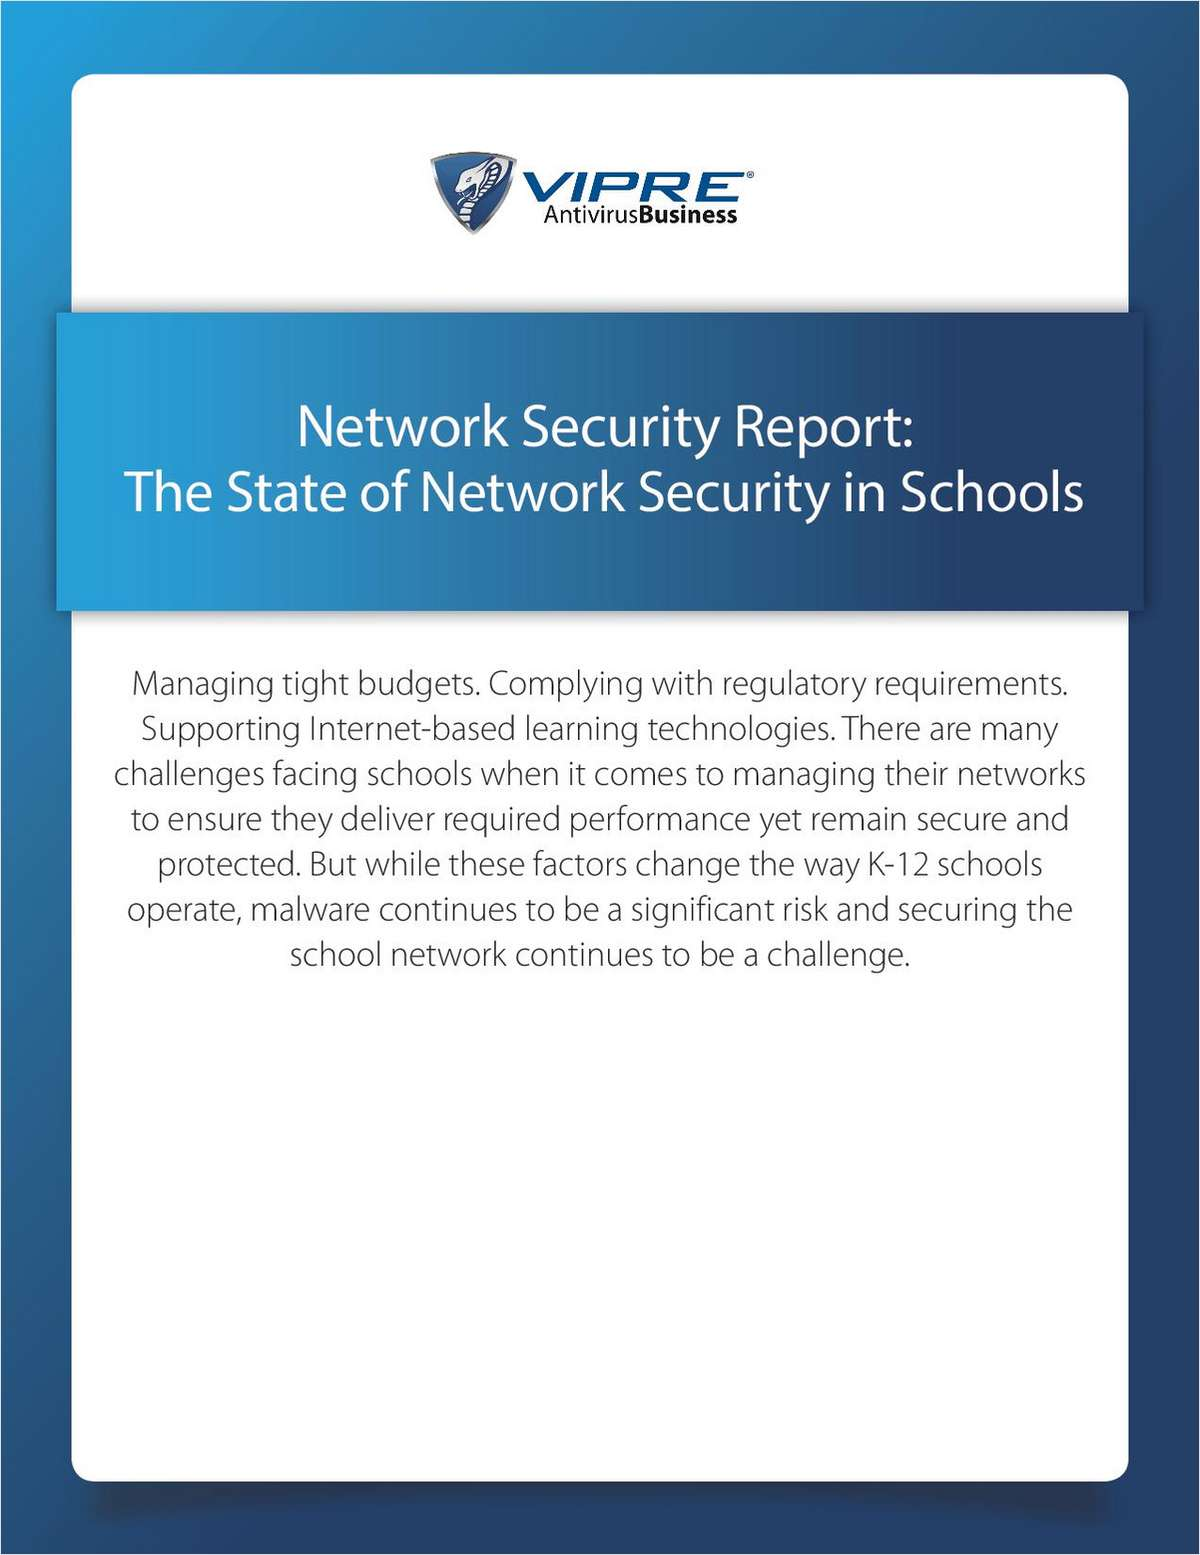 Network Security Report: The State of Network Security in Schools